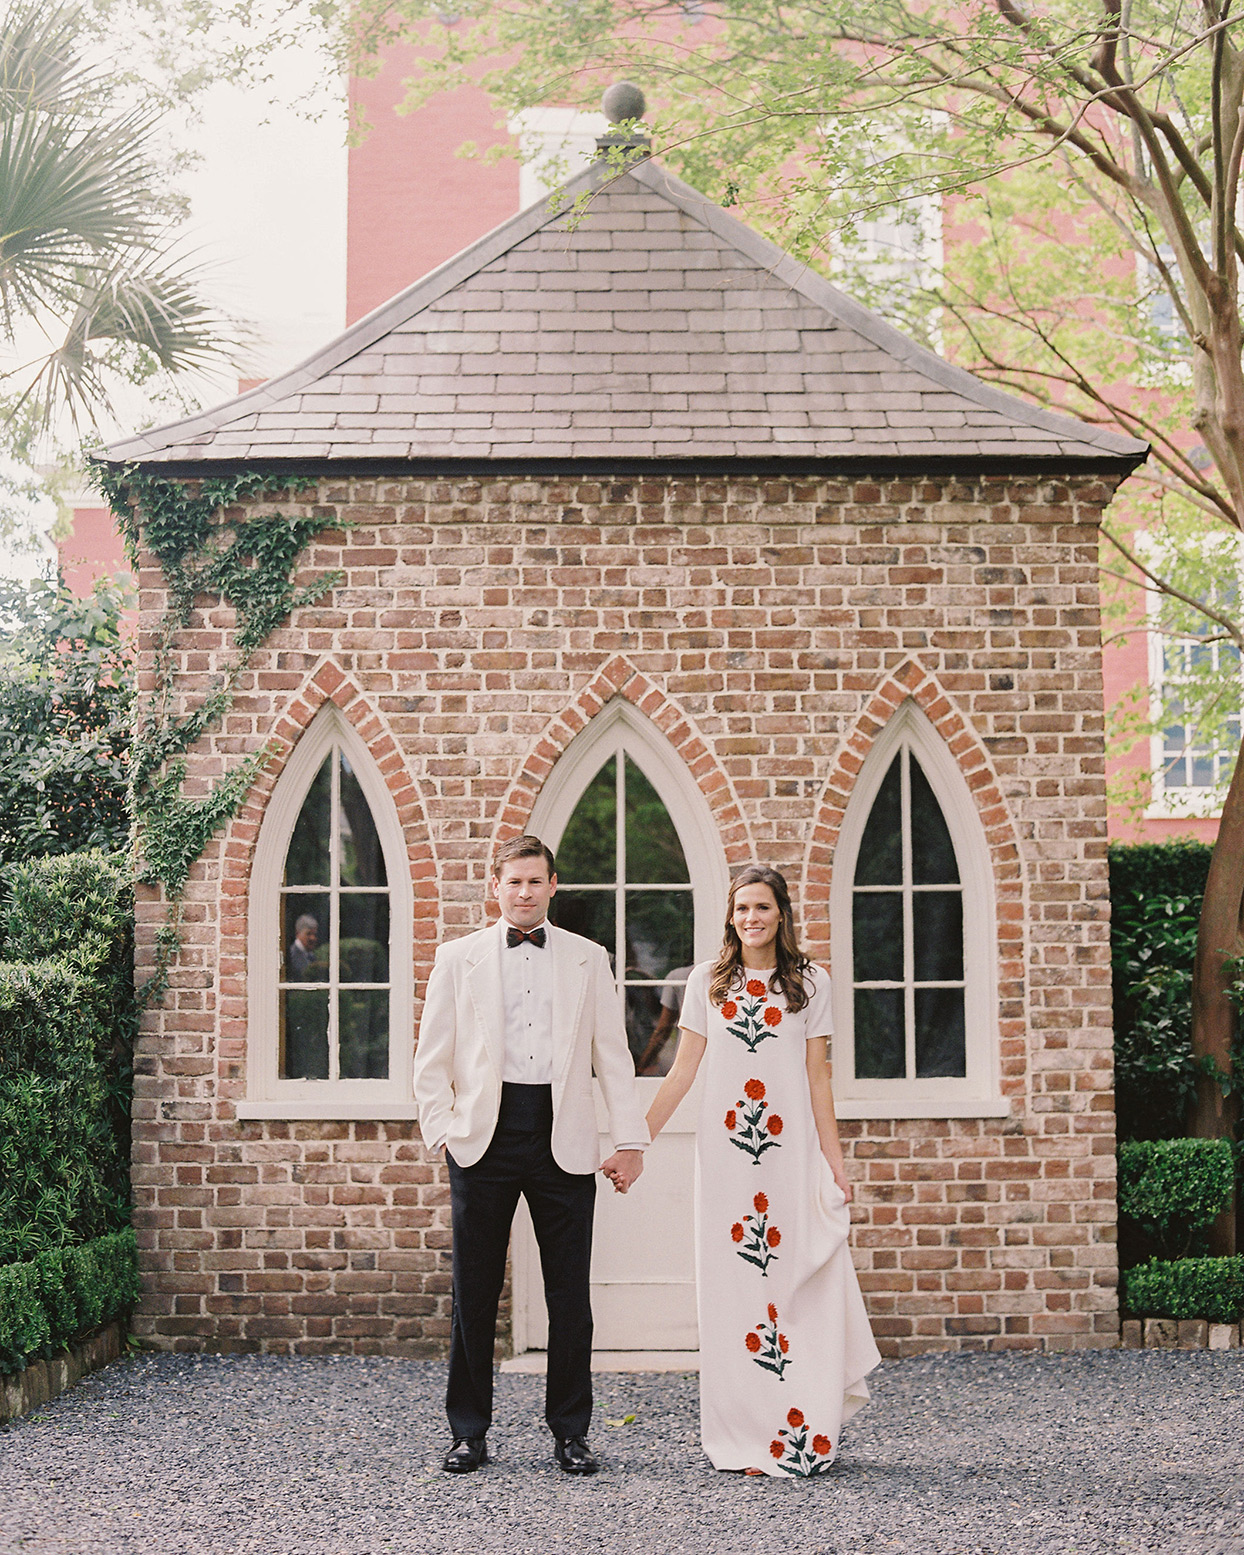 The Bride's Embroidered Wedding Dress Inspired Every Part of This Red-and-White Charleston Celebration